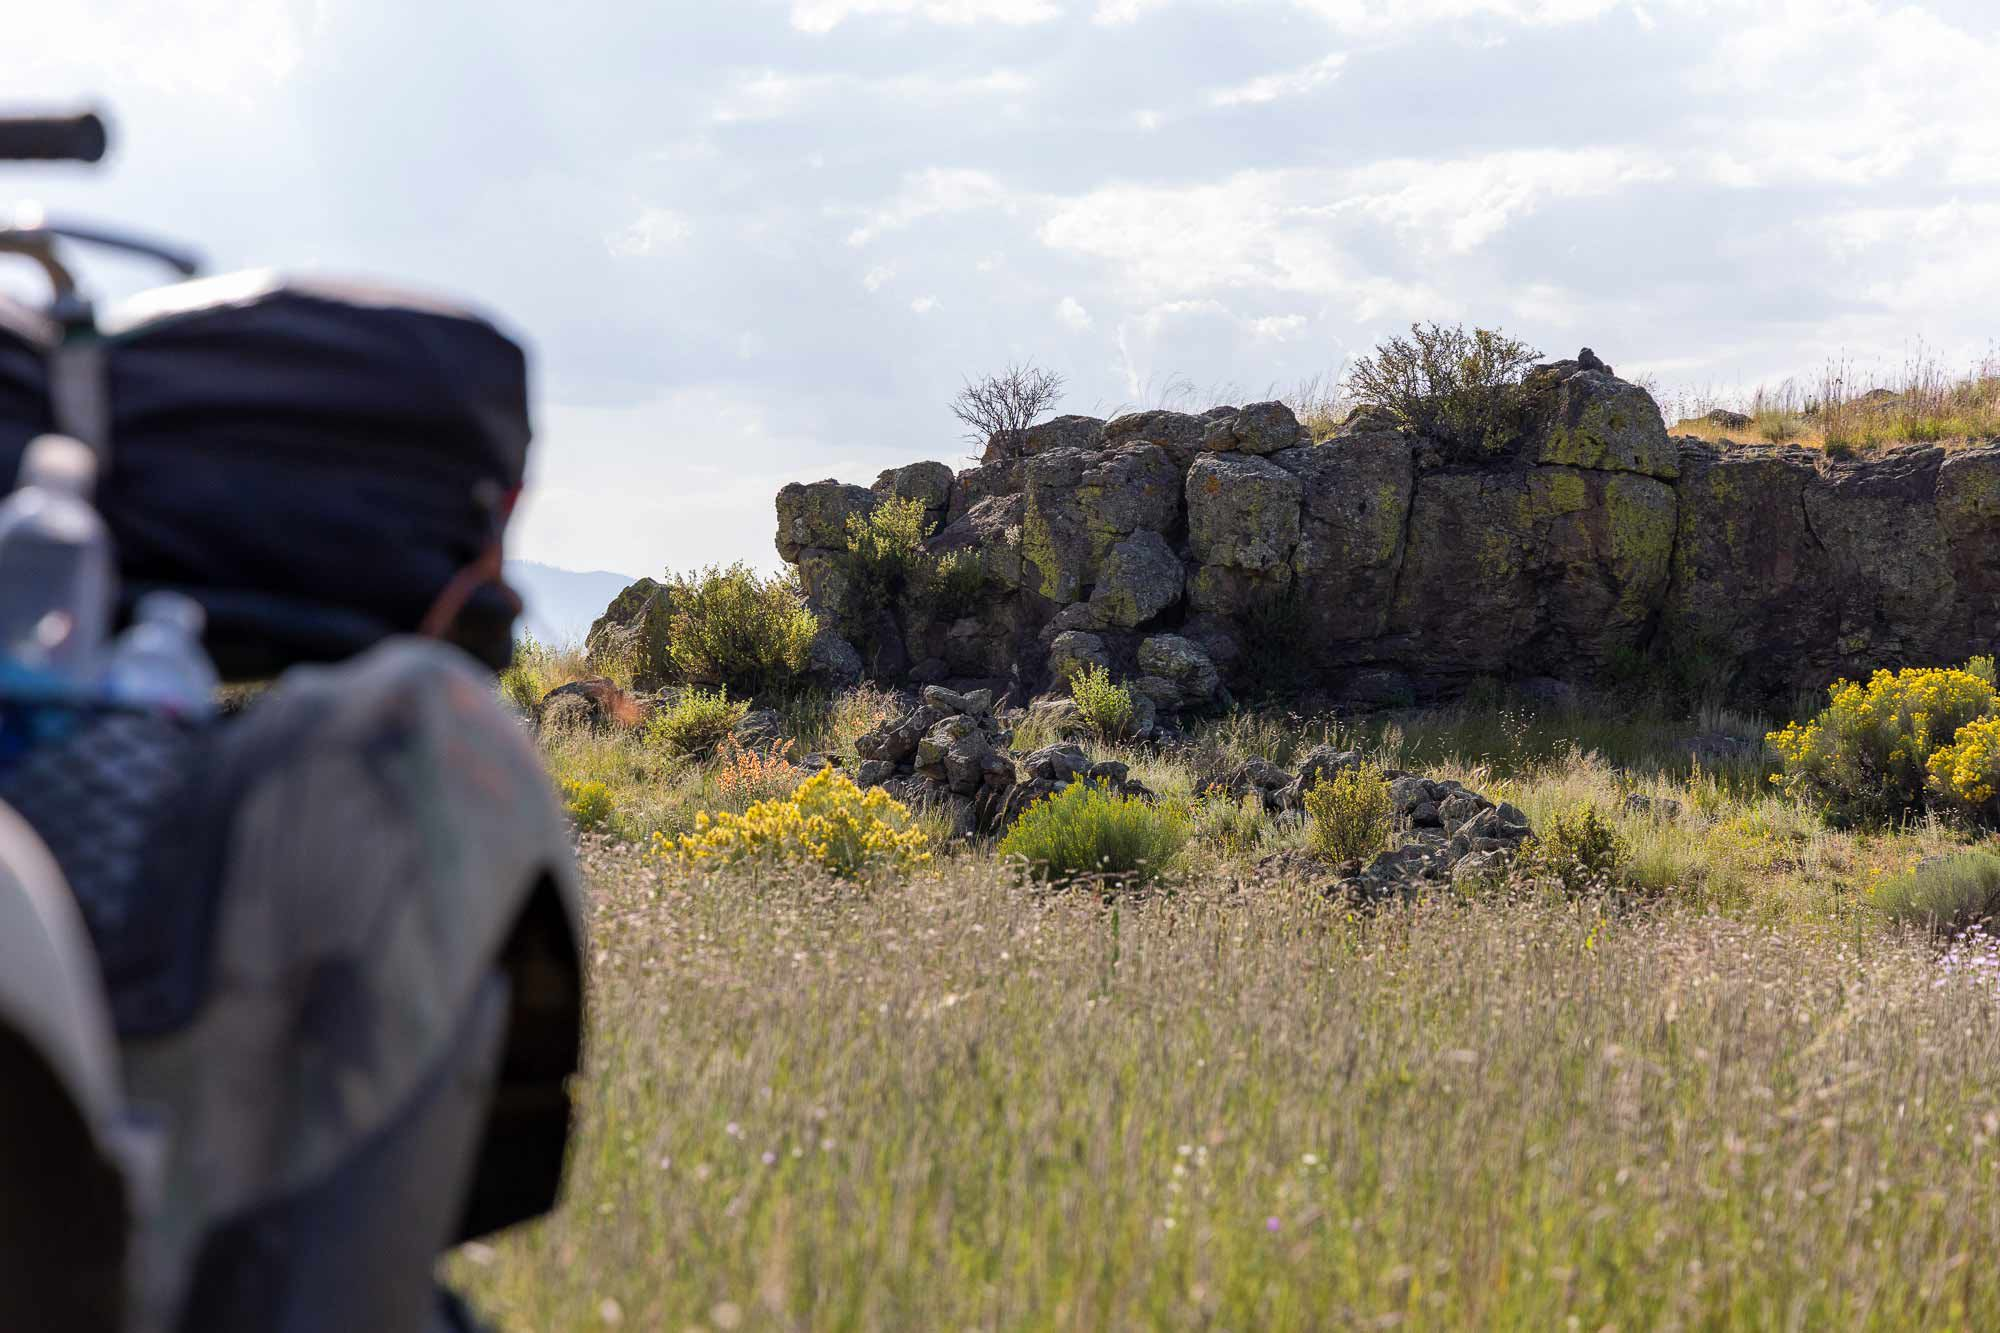 Centuries ago, Native Americans made camp on this spot, a rocky promontory with a creek and 360-degree views of the surrounding landscape.